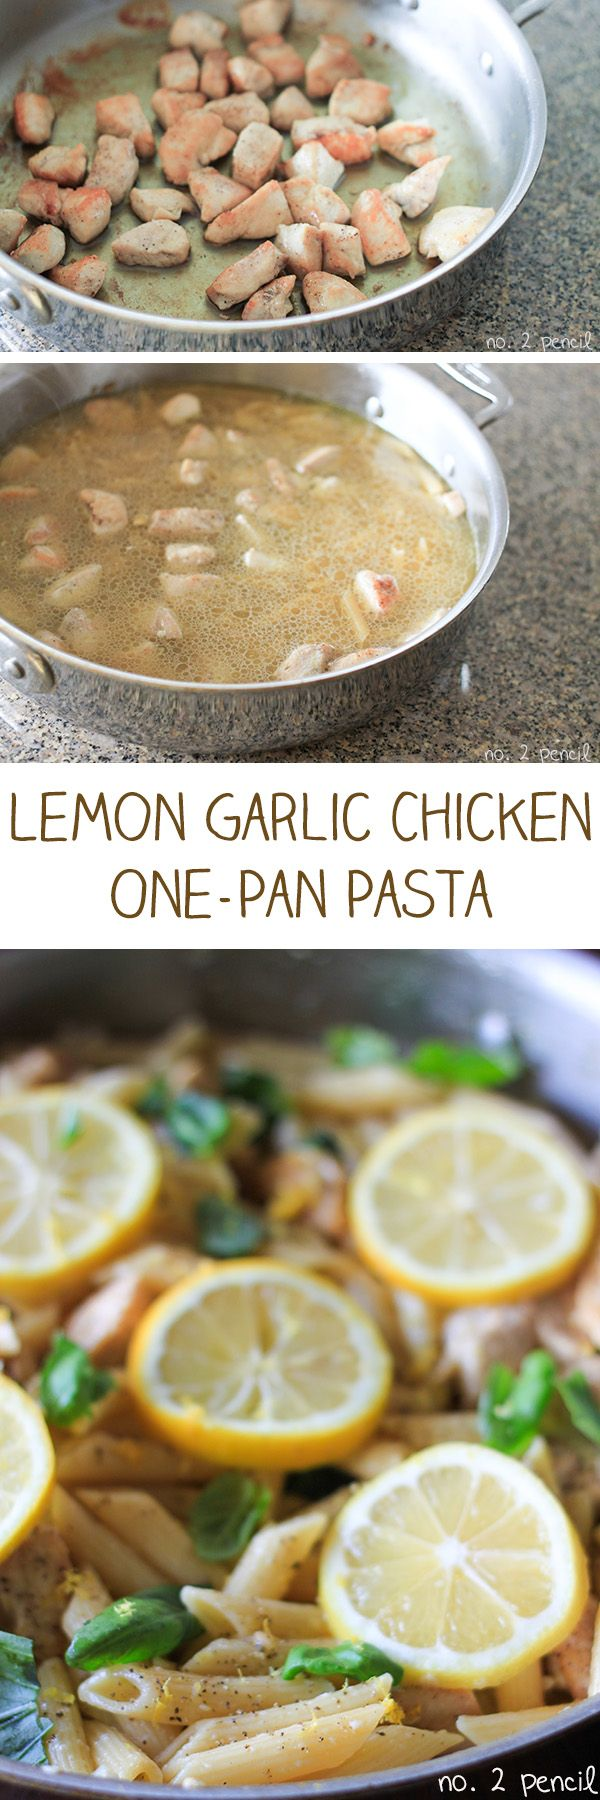 One-Pan Lemon Garlic Chicken Pasta…..I thought this was really good, takes about a half hour, nice you only have to dirty one